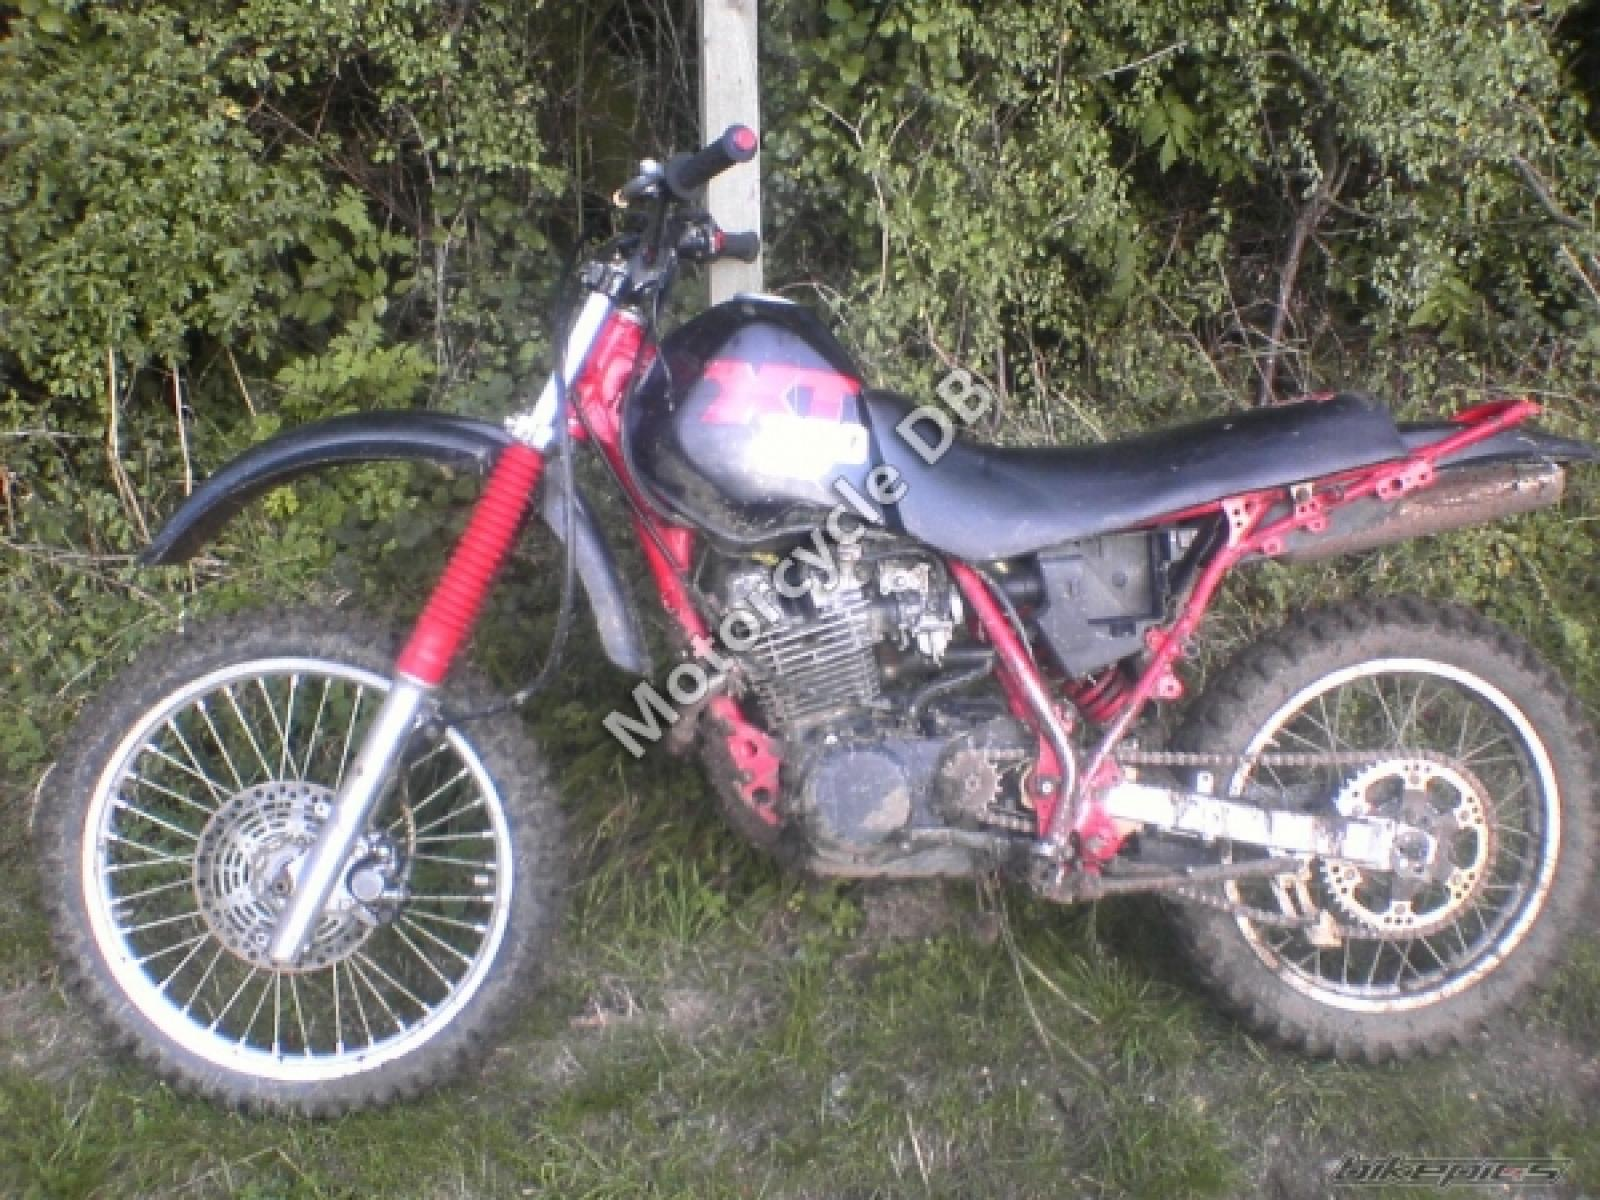 yamaha xt 350 reduced effect 1988 7 1988 yamaha xt 350 (reduced effect) moto zombdrive com 2017 Yamaha XT350 at soozxer.org